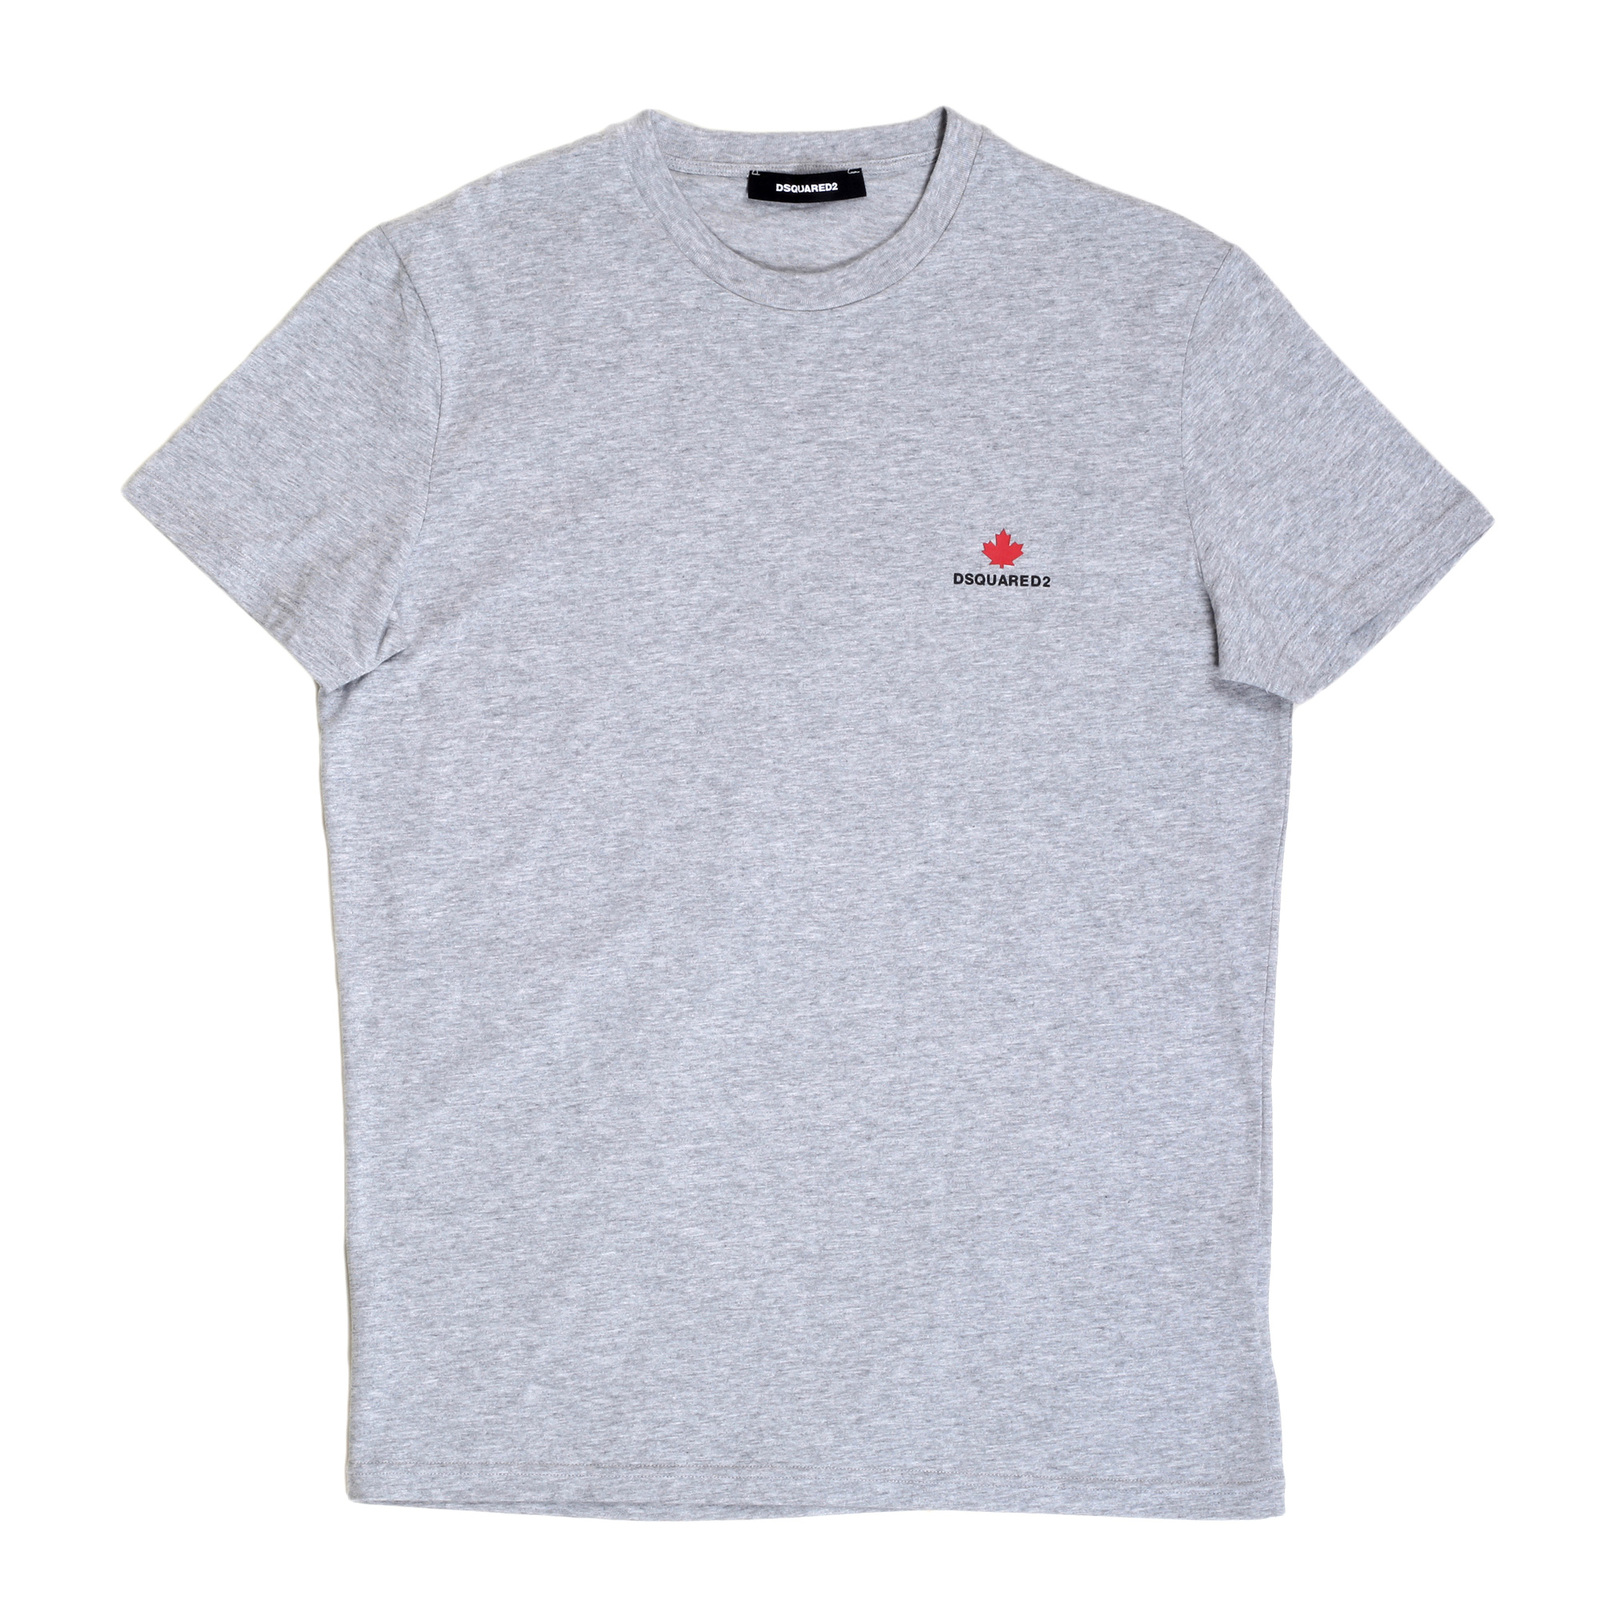 acb6627ae5b Buy Dsquared2 Grey Crew Neck T-Shirt with Short Sleeves